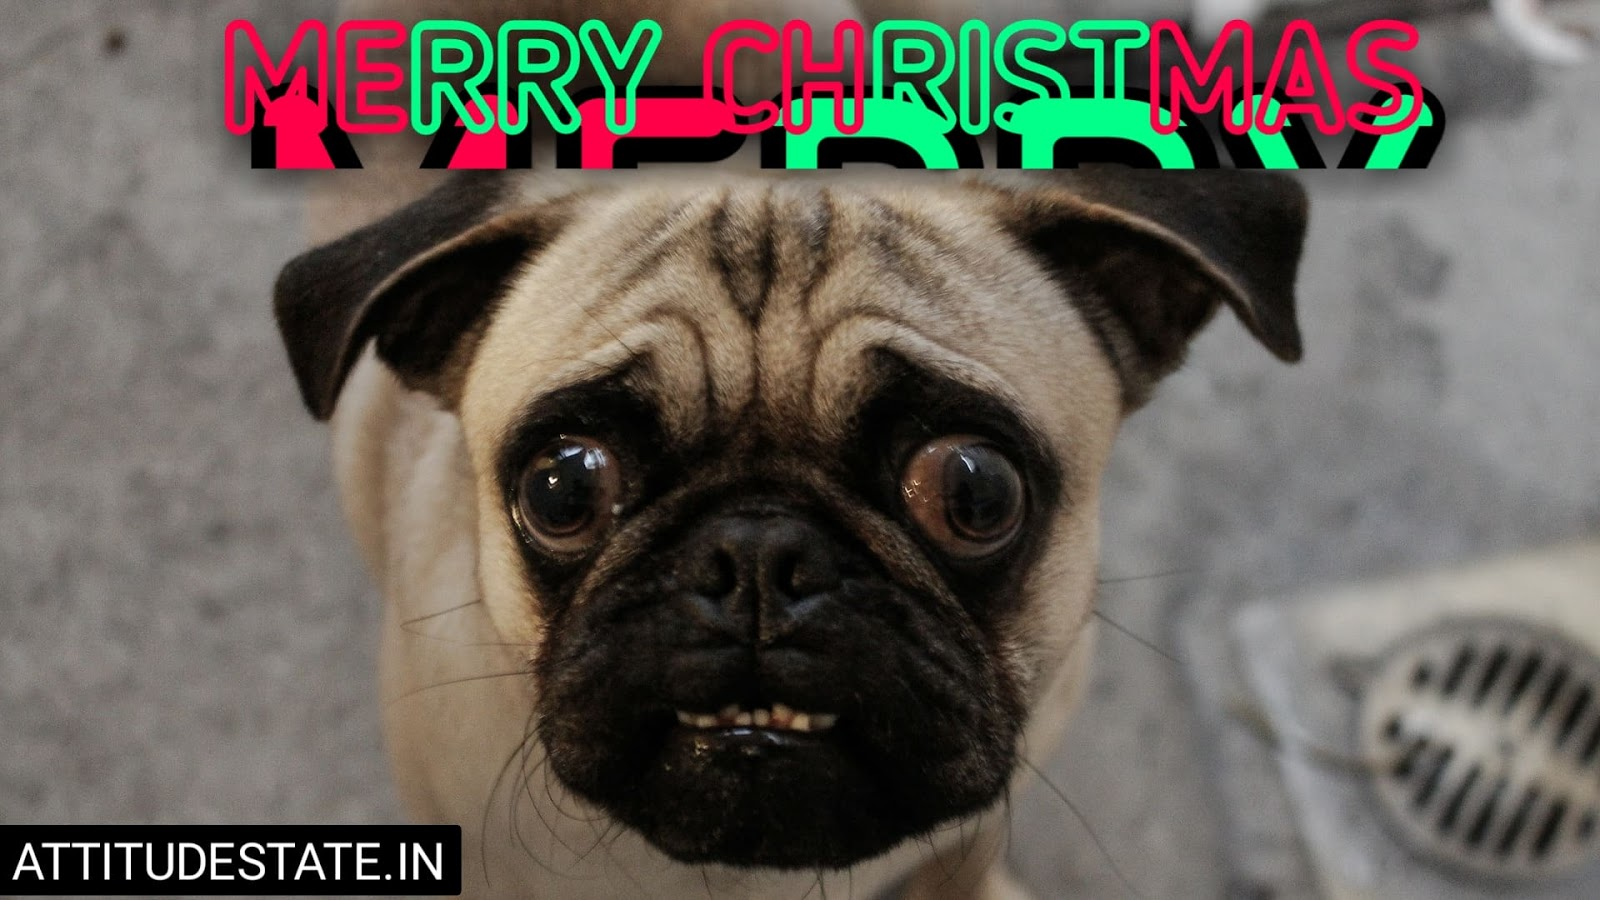 funny best merry christmas wishes